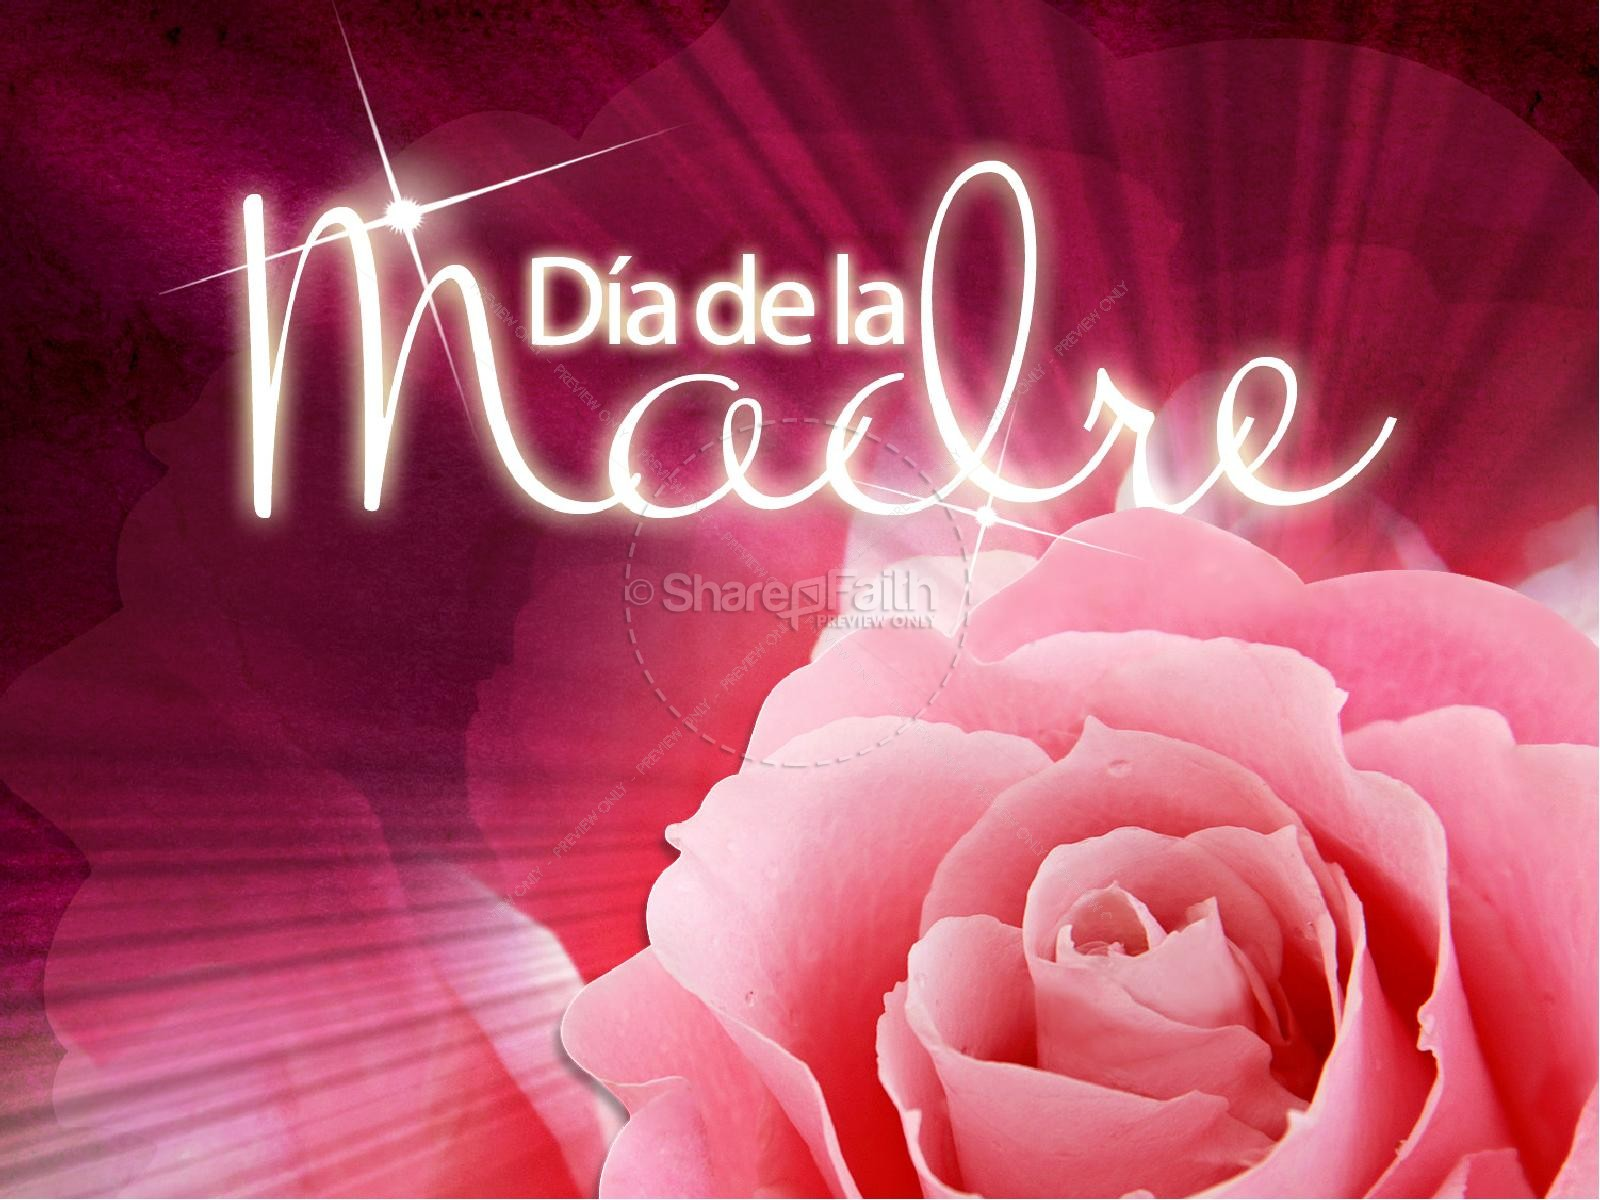 dia de las madres wallpaper - photo #2